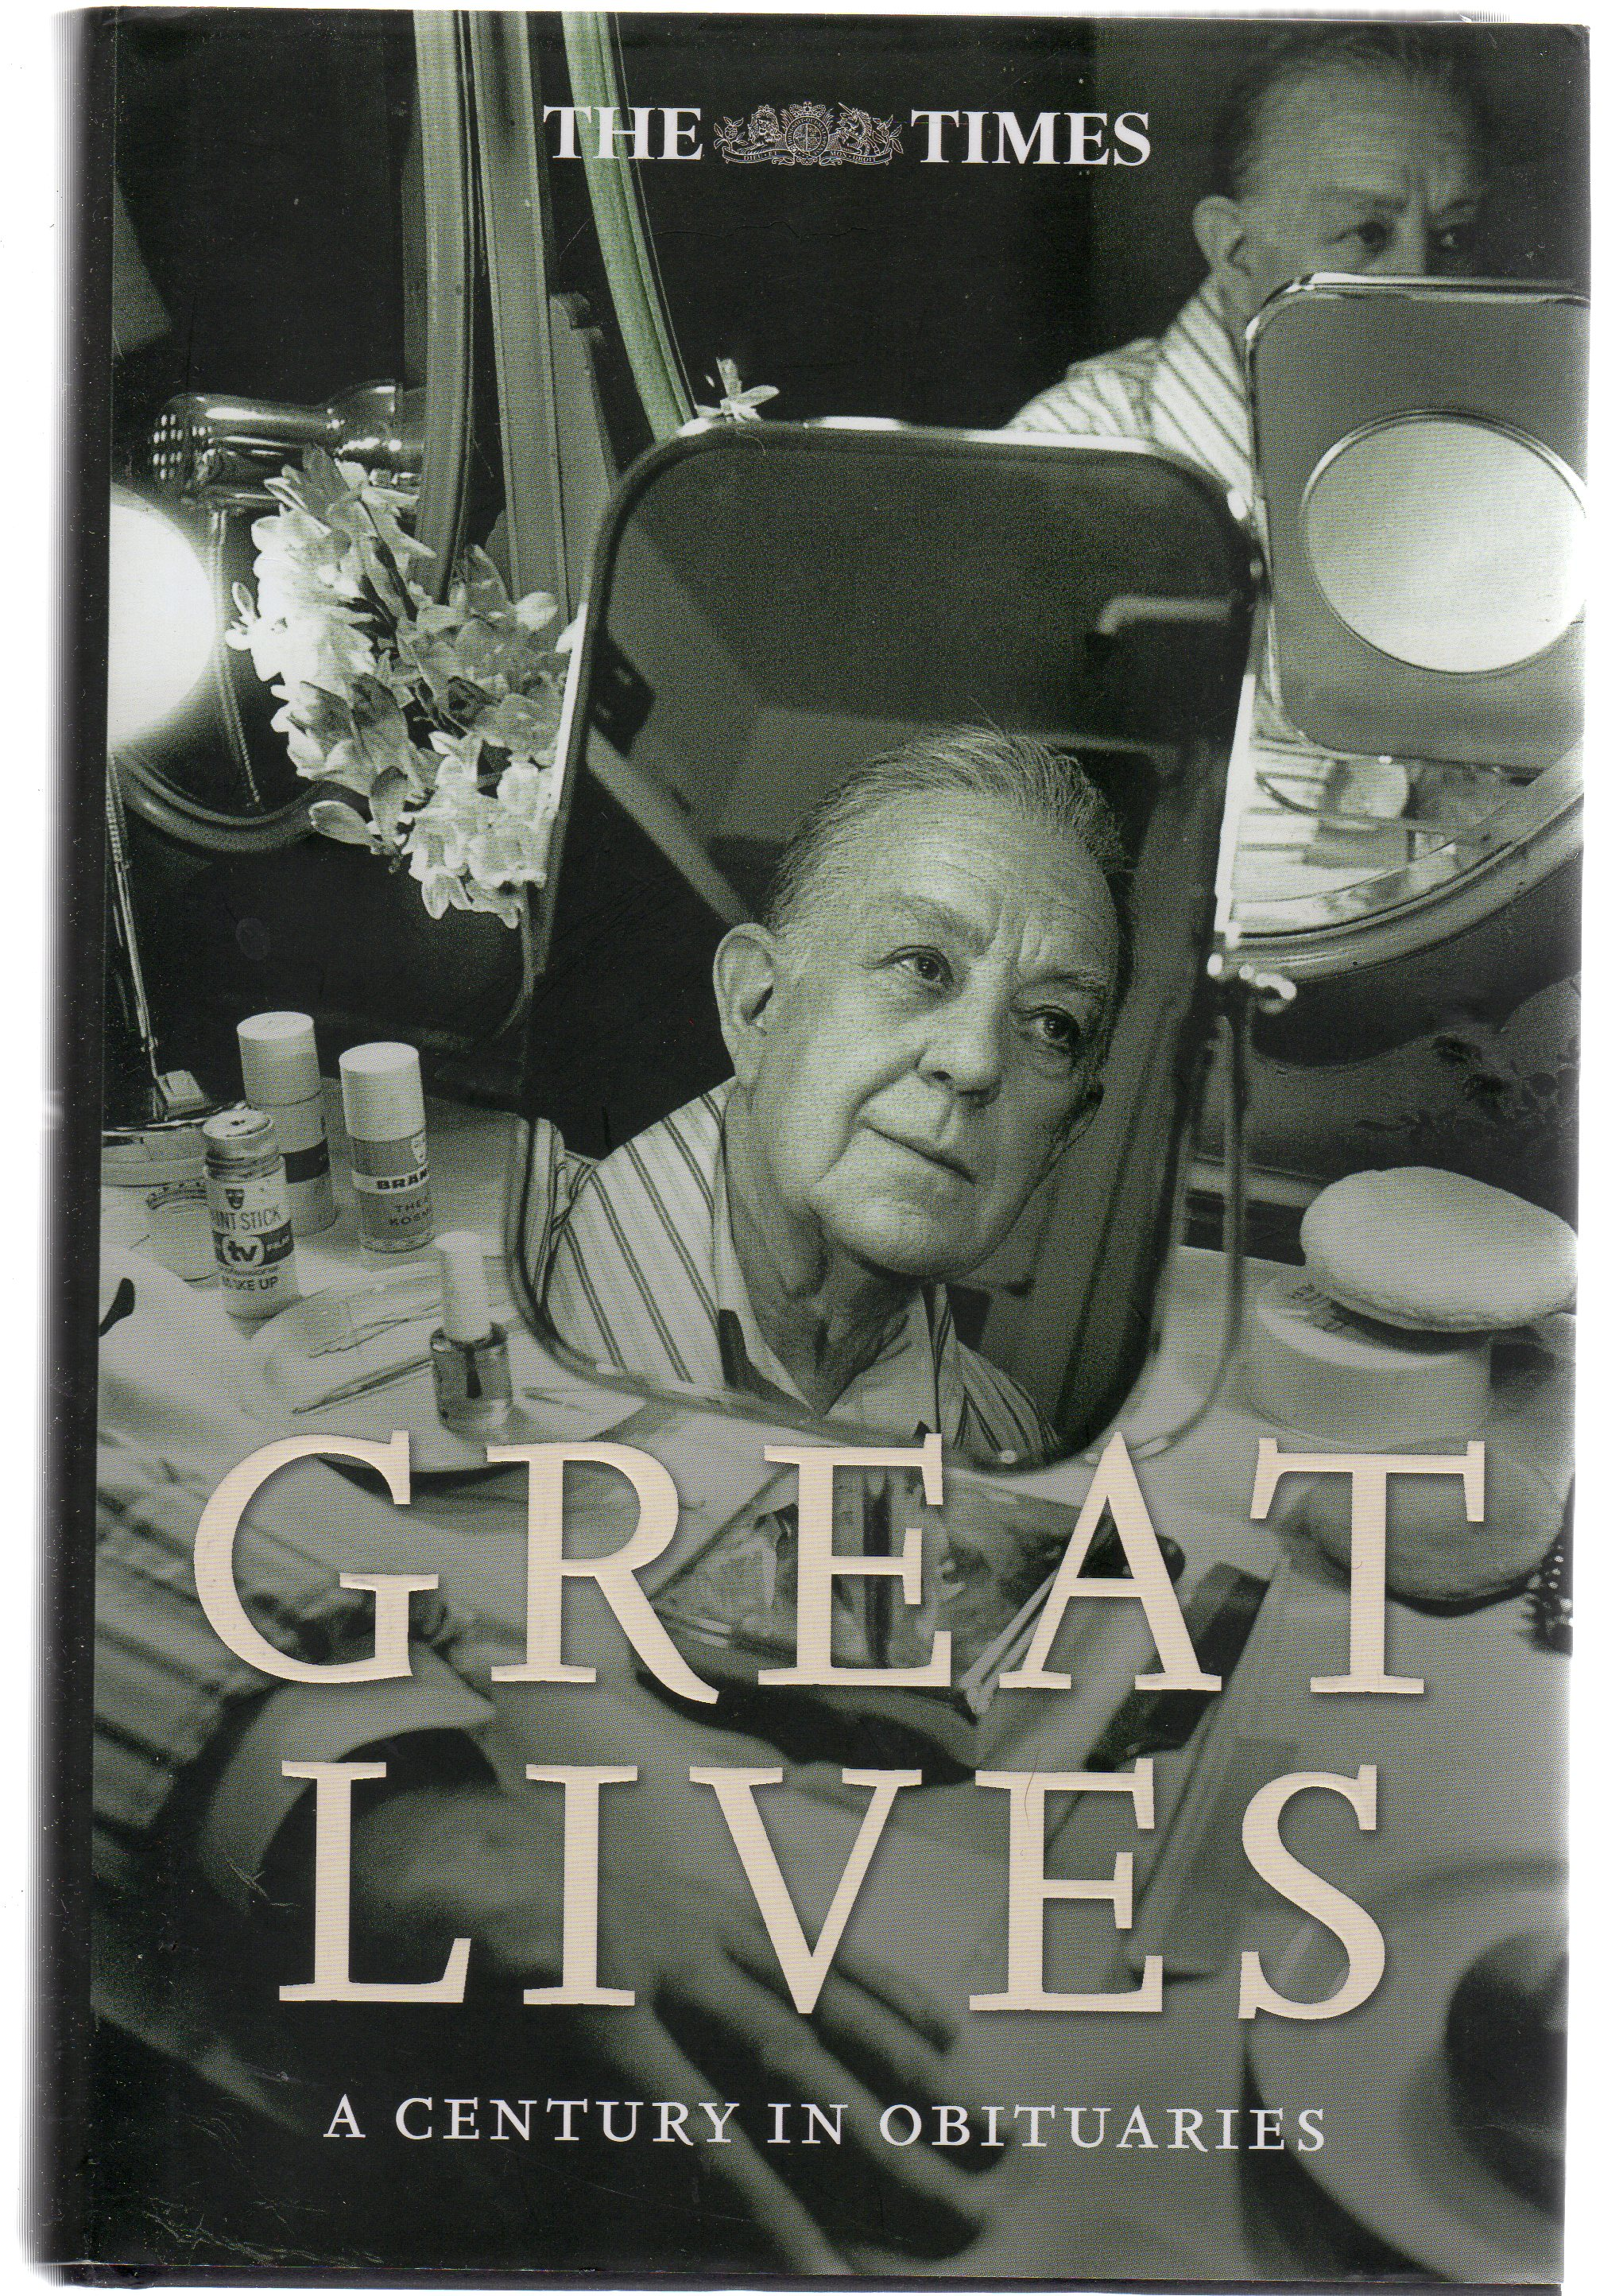 Image for The Times Great Lives : A Century in Obituaries